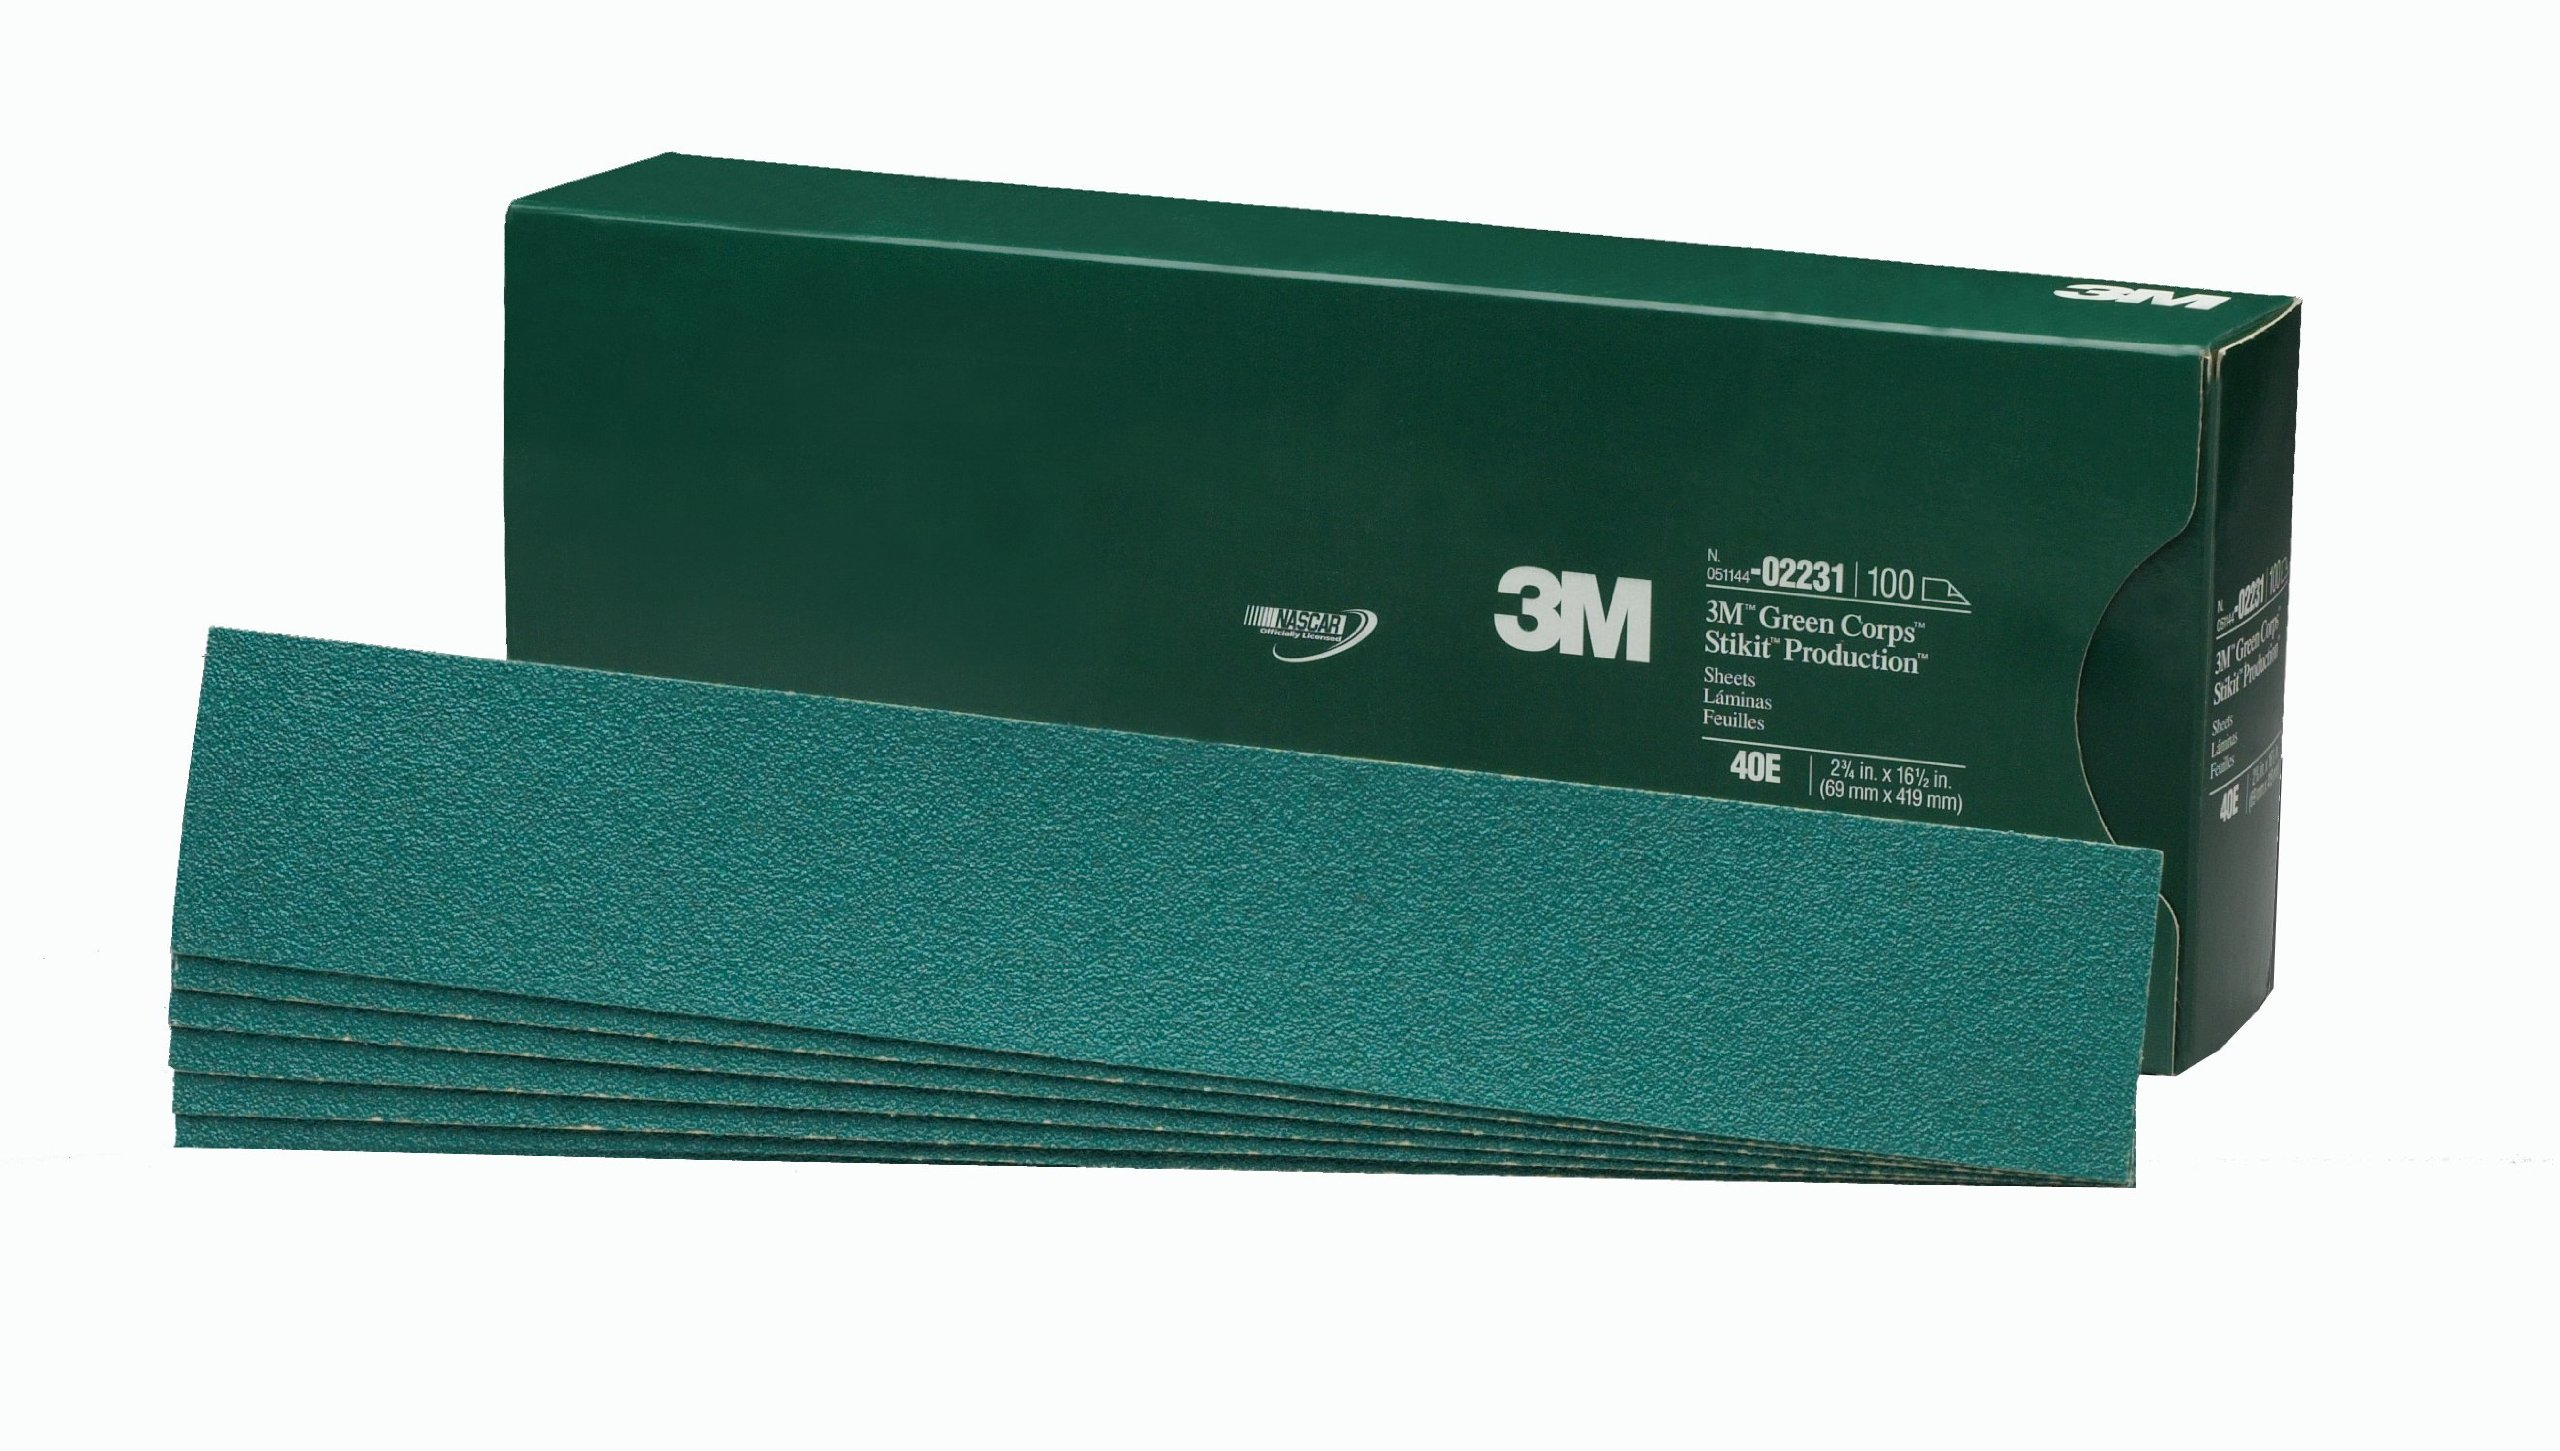 3M 02231 Green Corps Stikit 2-3/4'' x 16-1/2'' 40E Grit Production Sheet